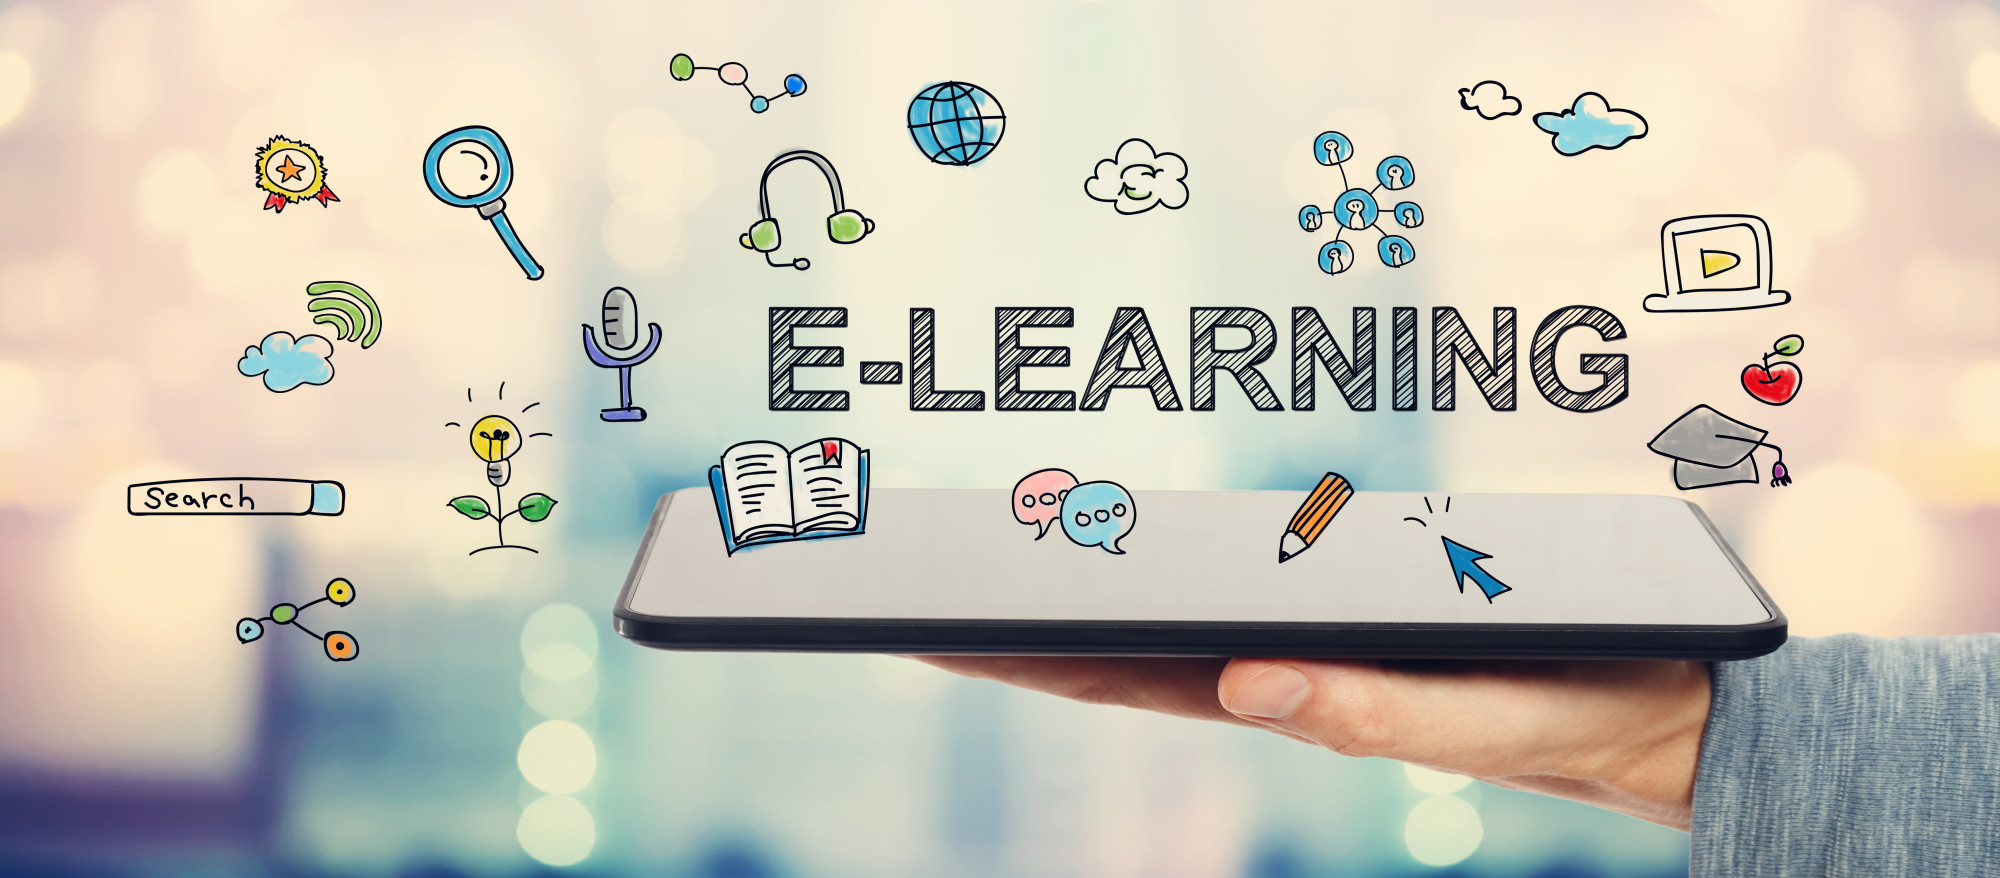 10 Key Elearning Instructional Design Tips For Successful Elearning Branding Design Development And Marketing In Los Angeles Ripe Media